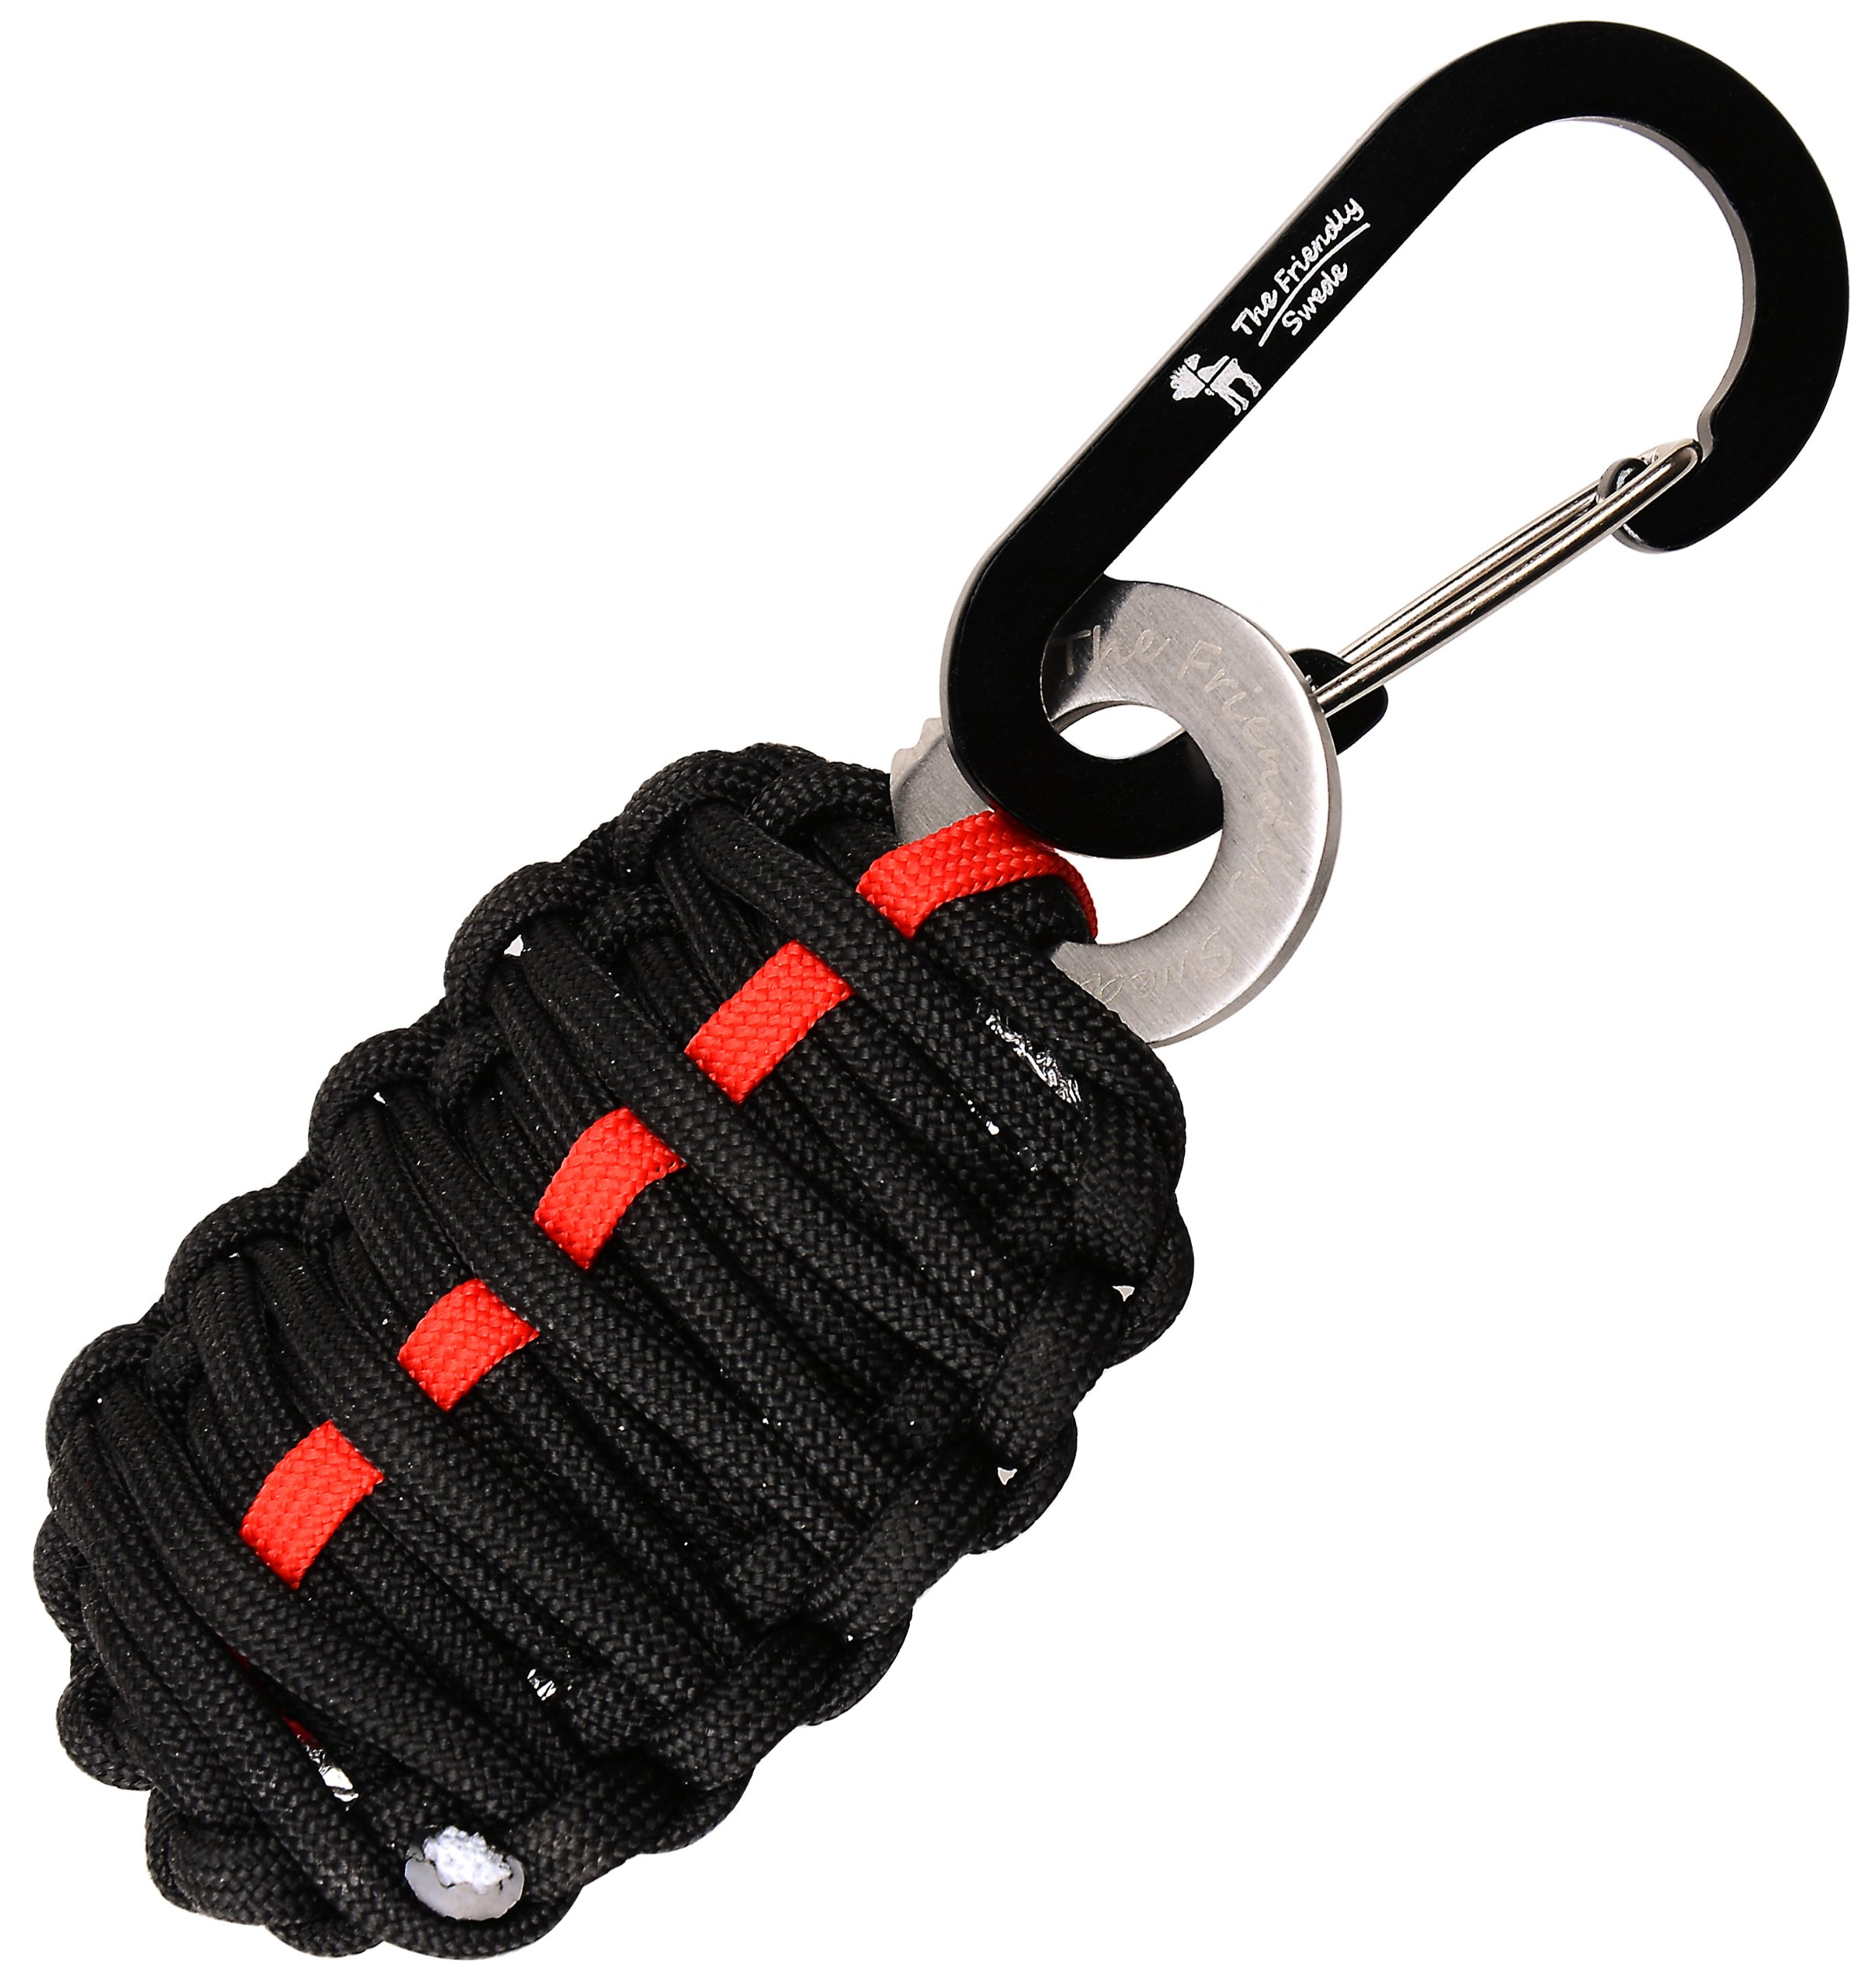 The Friendly Swede Auideas Carabiner Grenade Survival Kit with Eye Knife